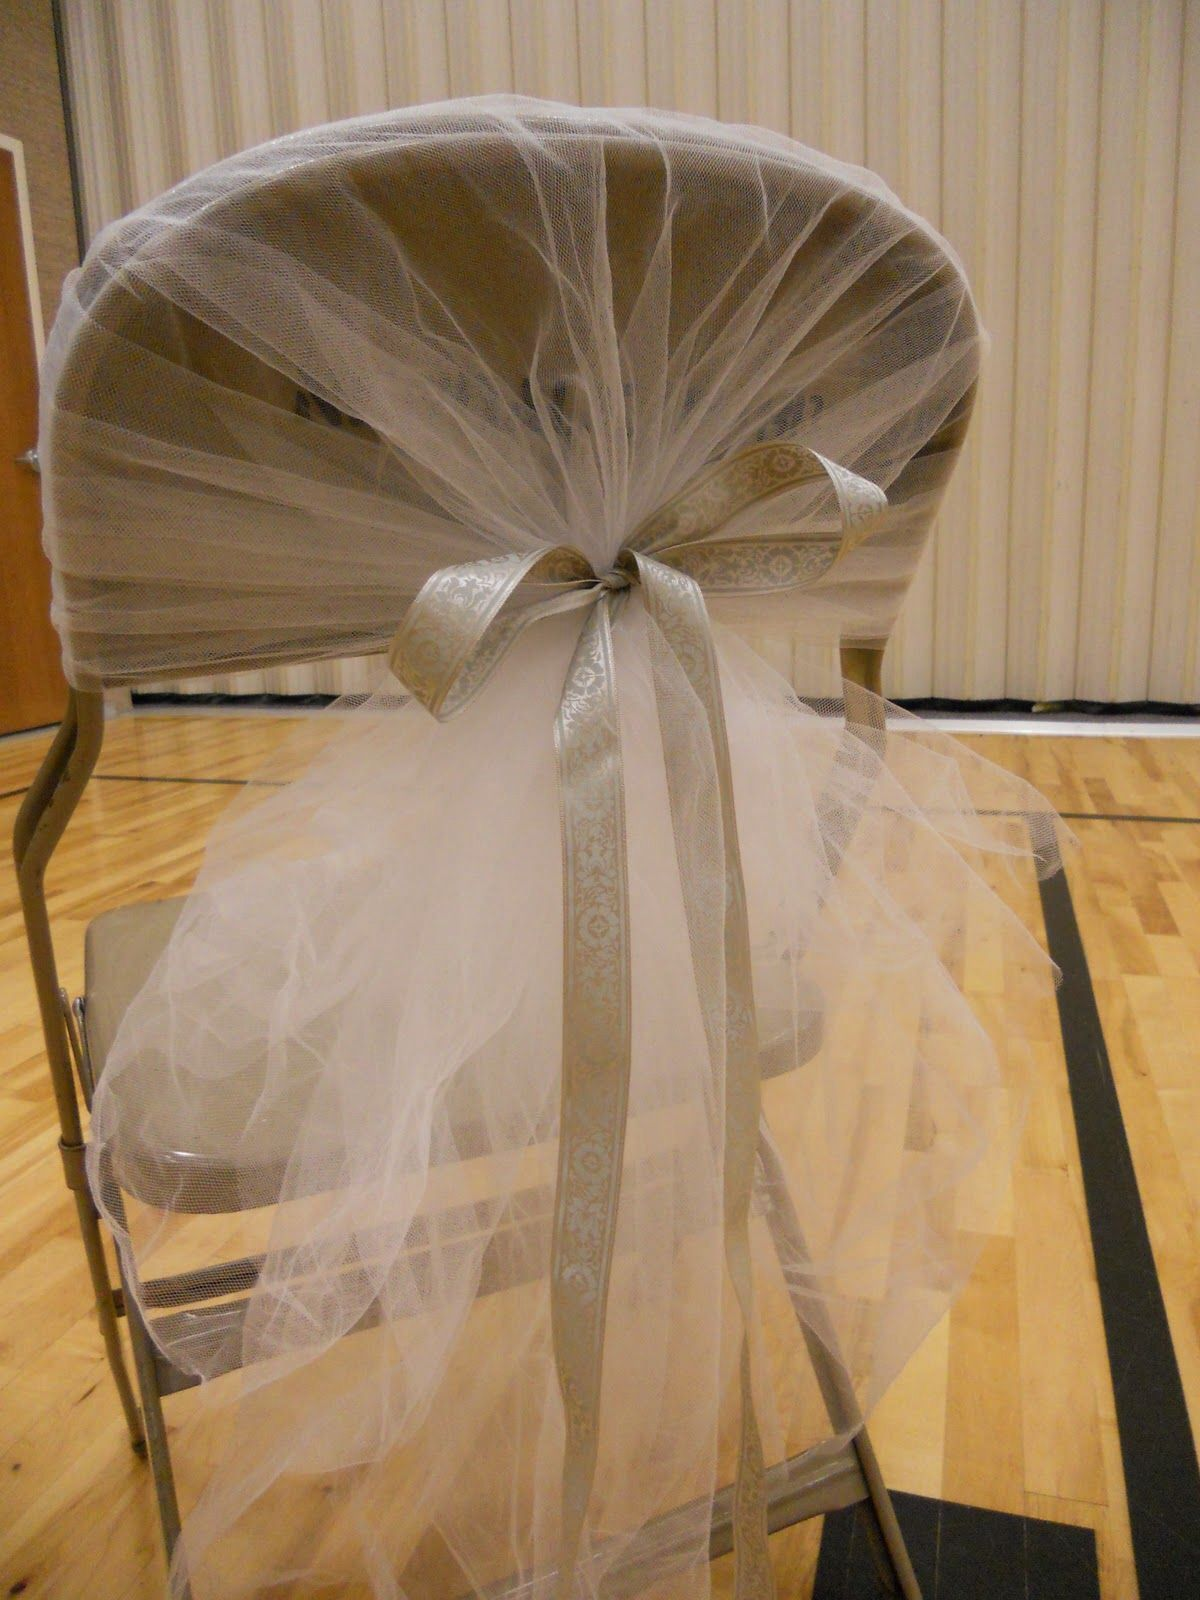 chair covers for weddings pinterest deep seat patio cushions char idea wedding chairs and decorations decoration table